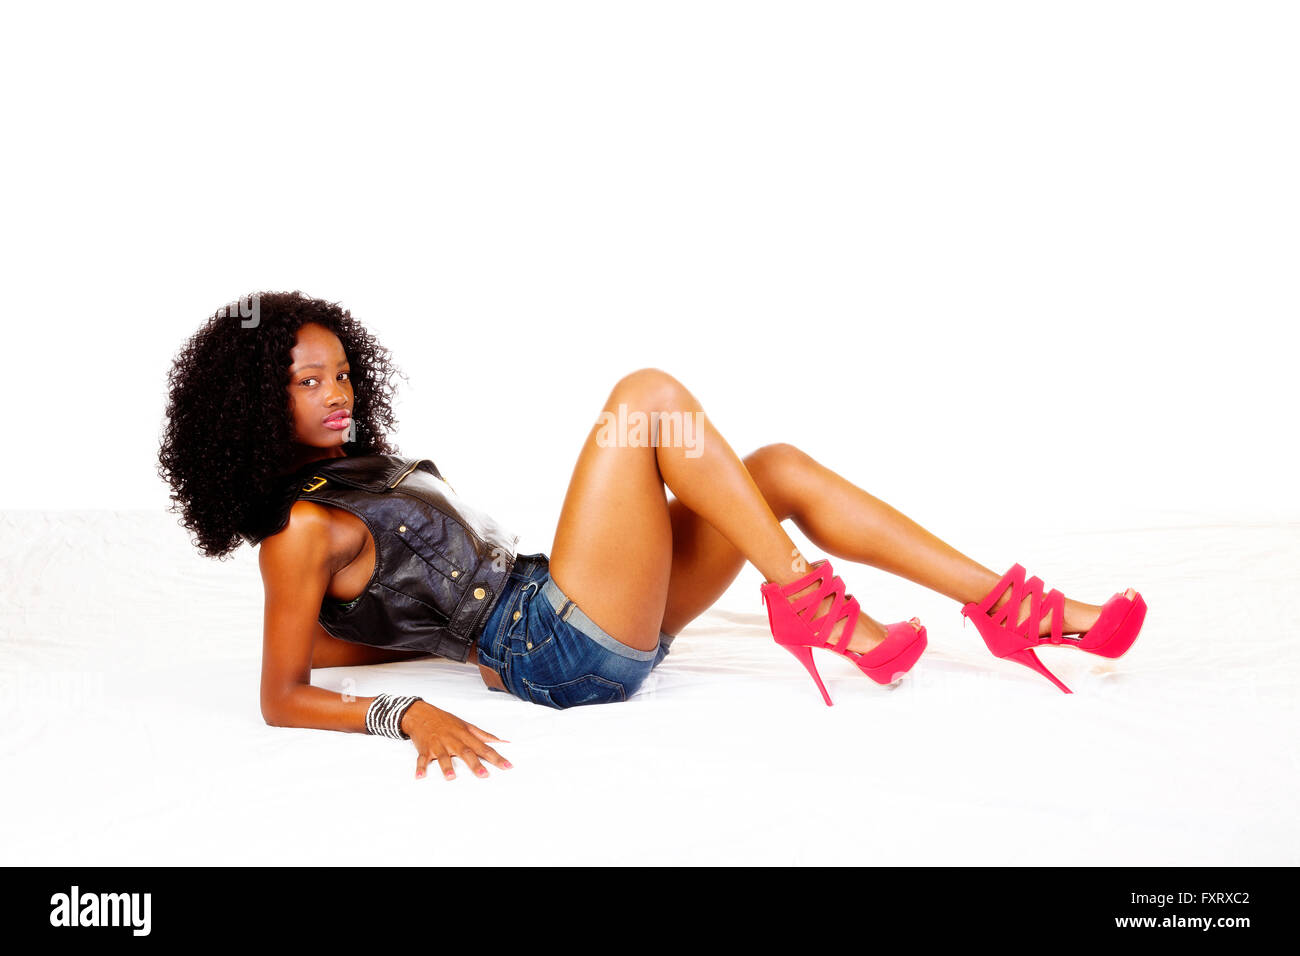 Attractive Black Teen Girl Reclining Shorts Vest - Stock Image